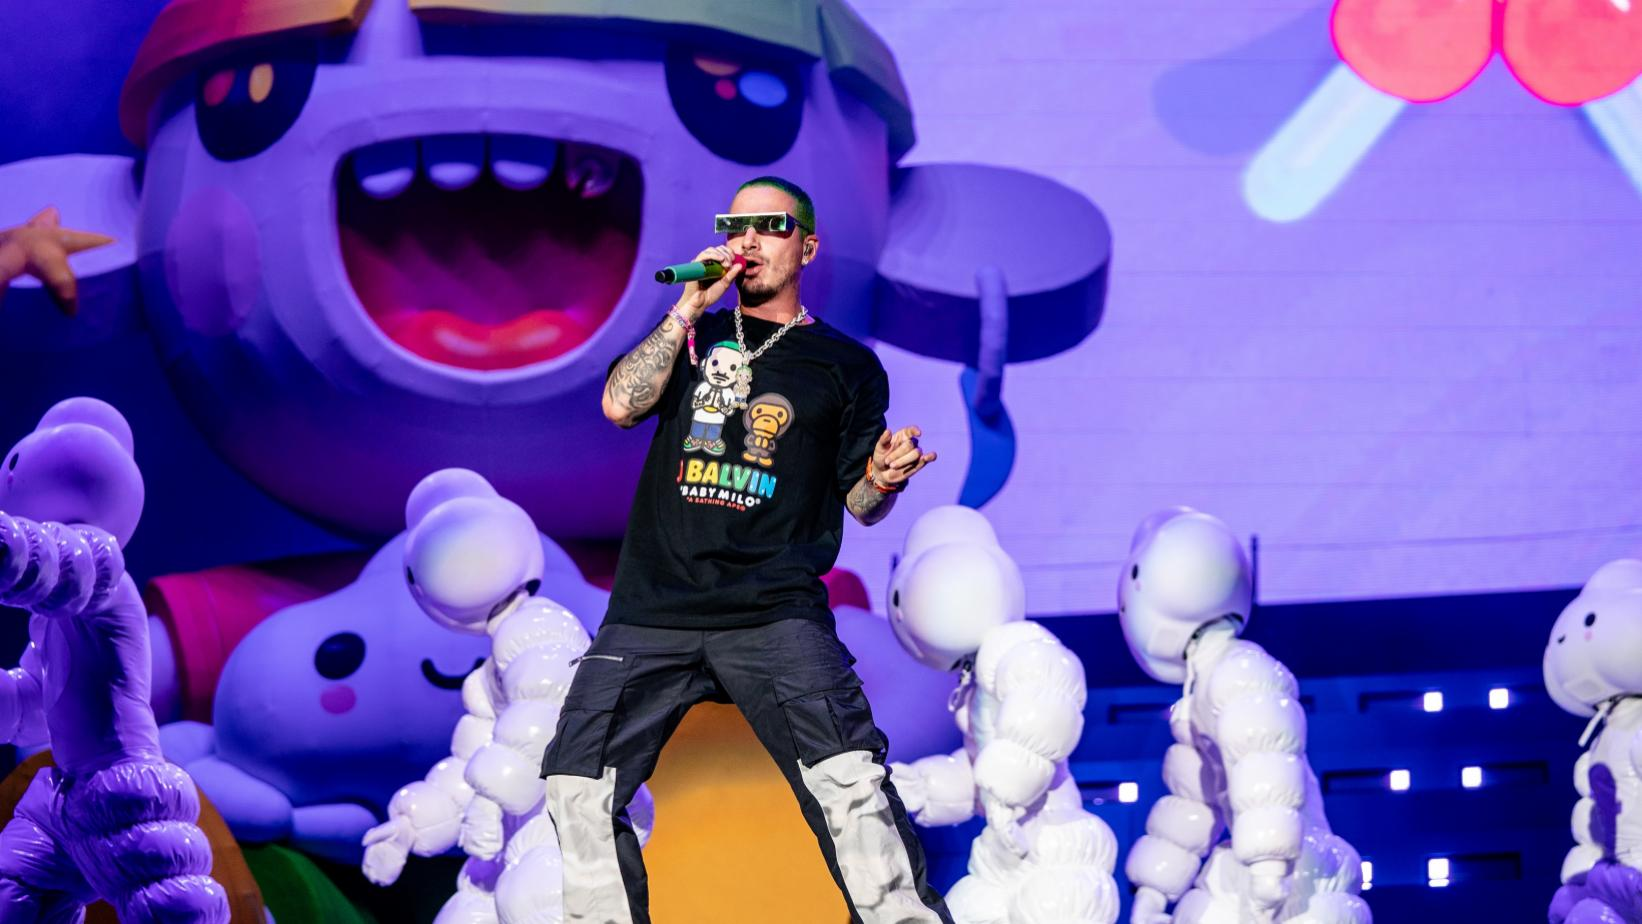 J Balvin at Lolla 2019